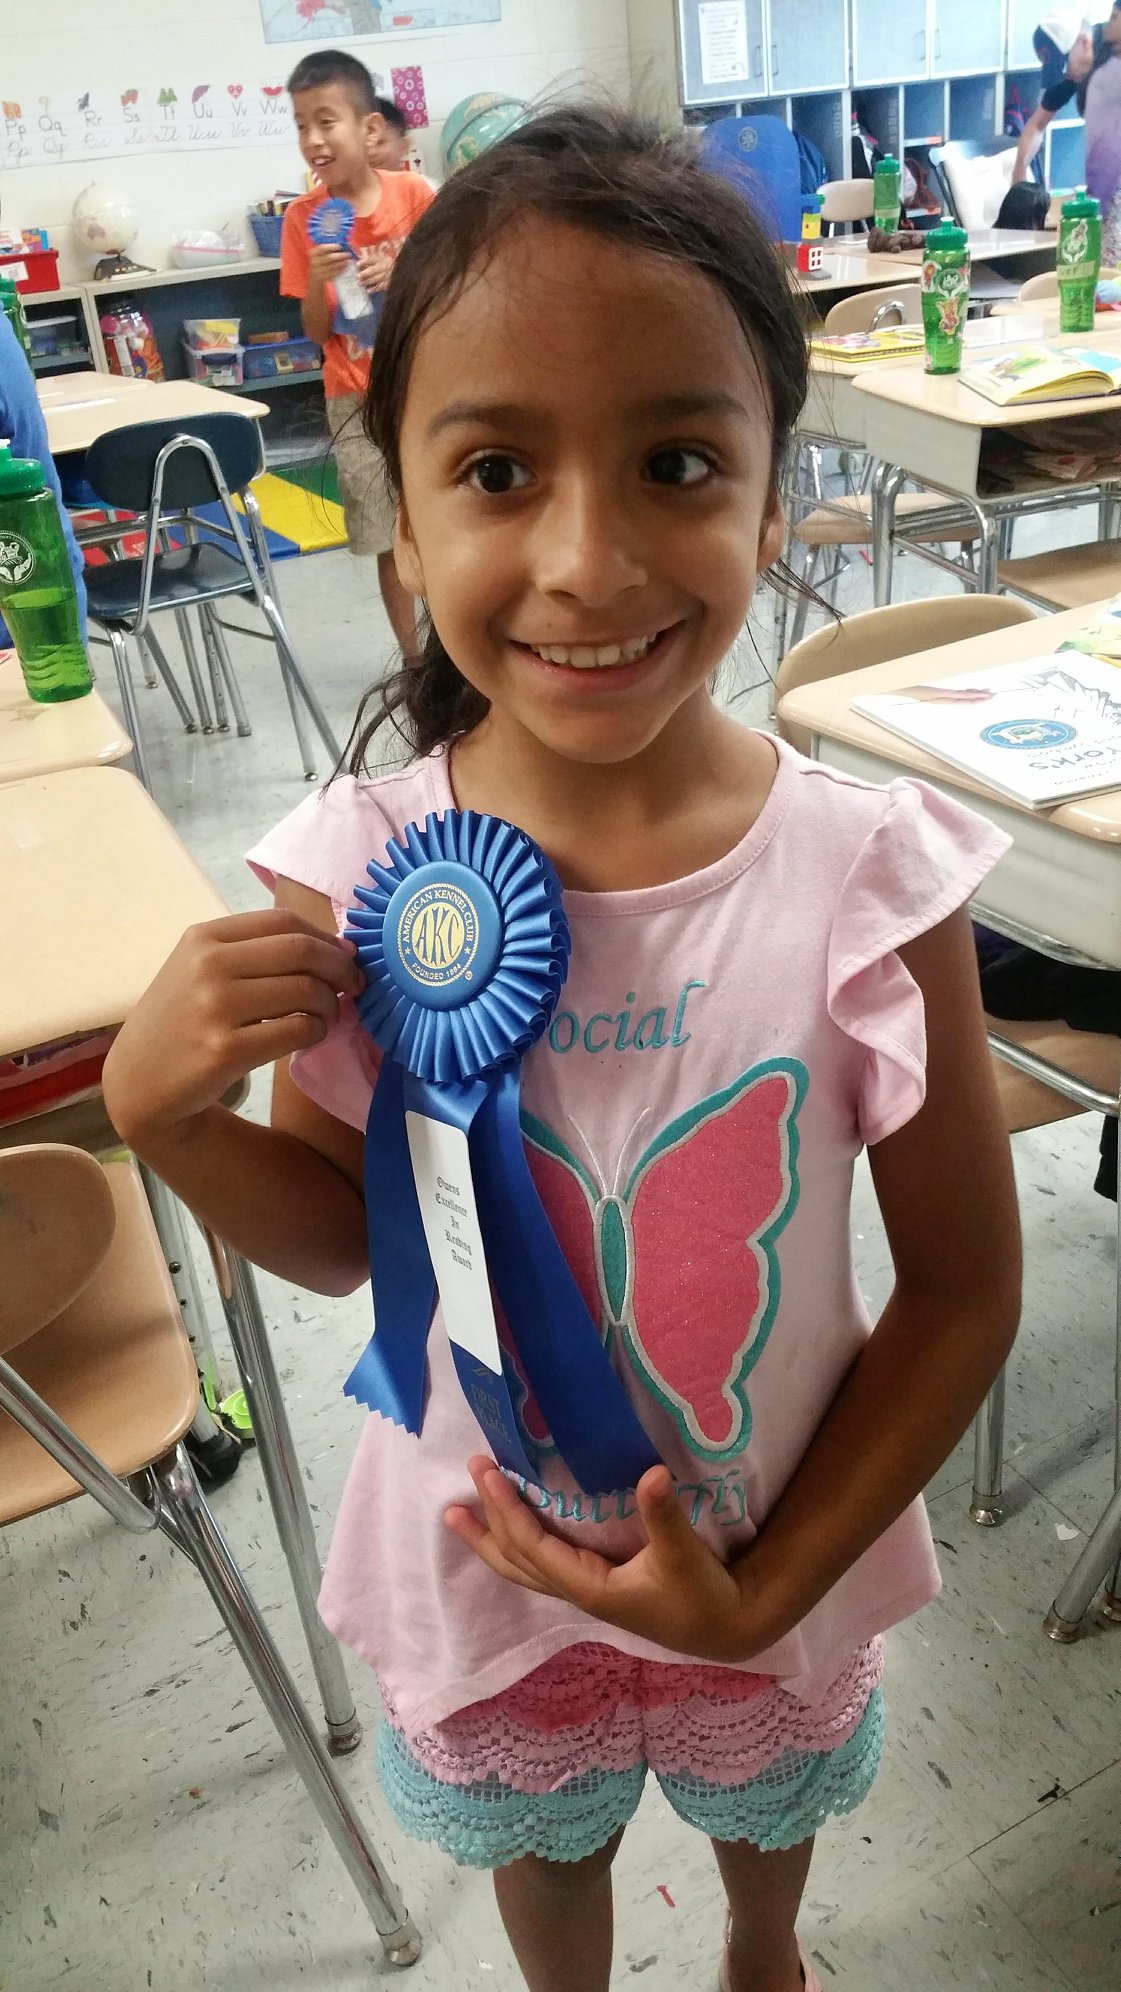 WAMC Summer Enrichment Program Student Reader of the Week for Aug. 6, 2018